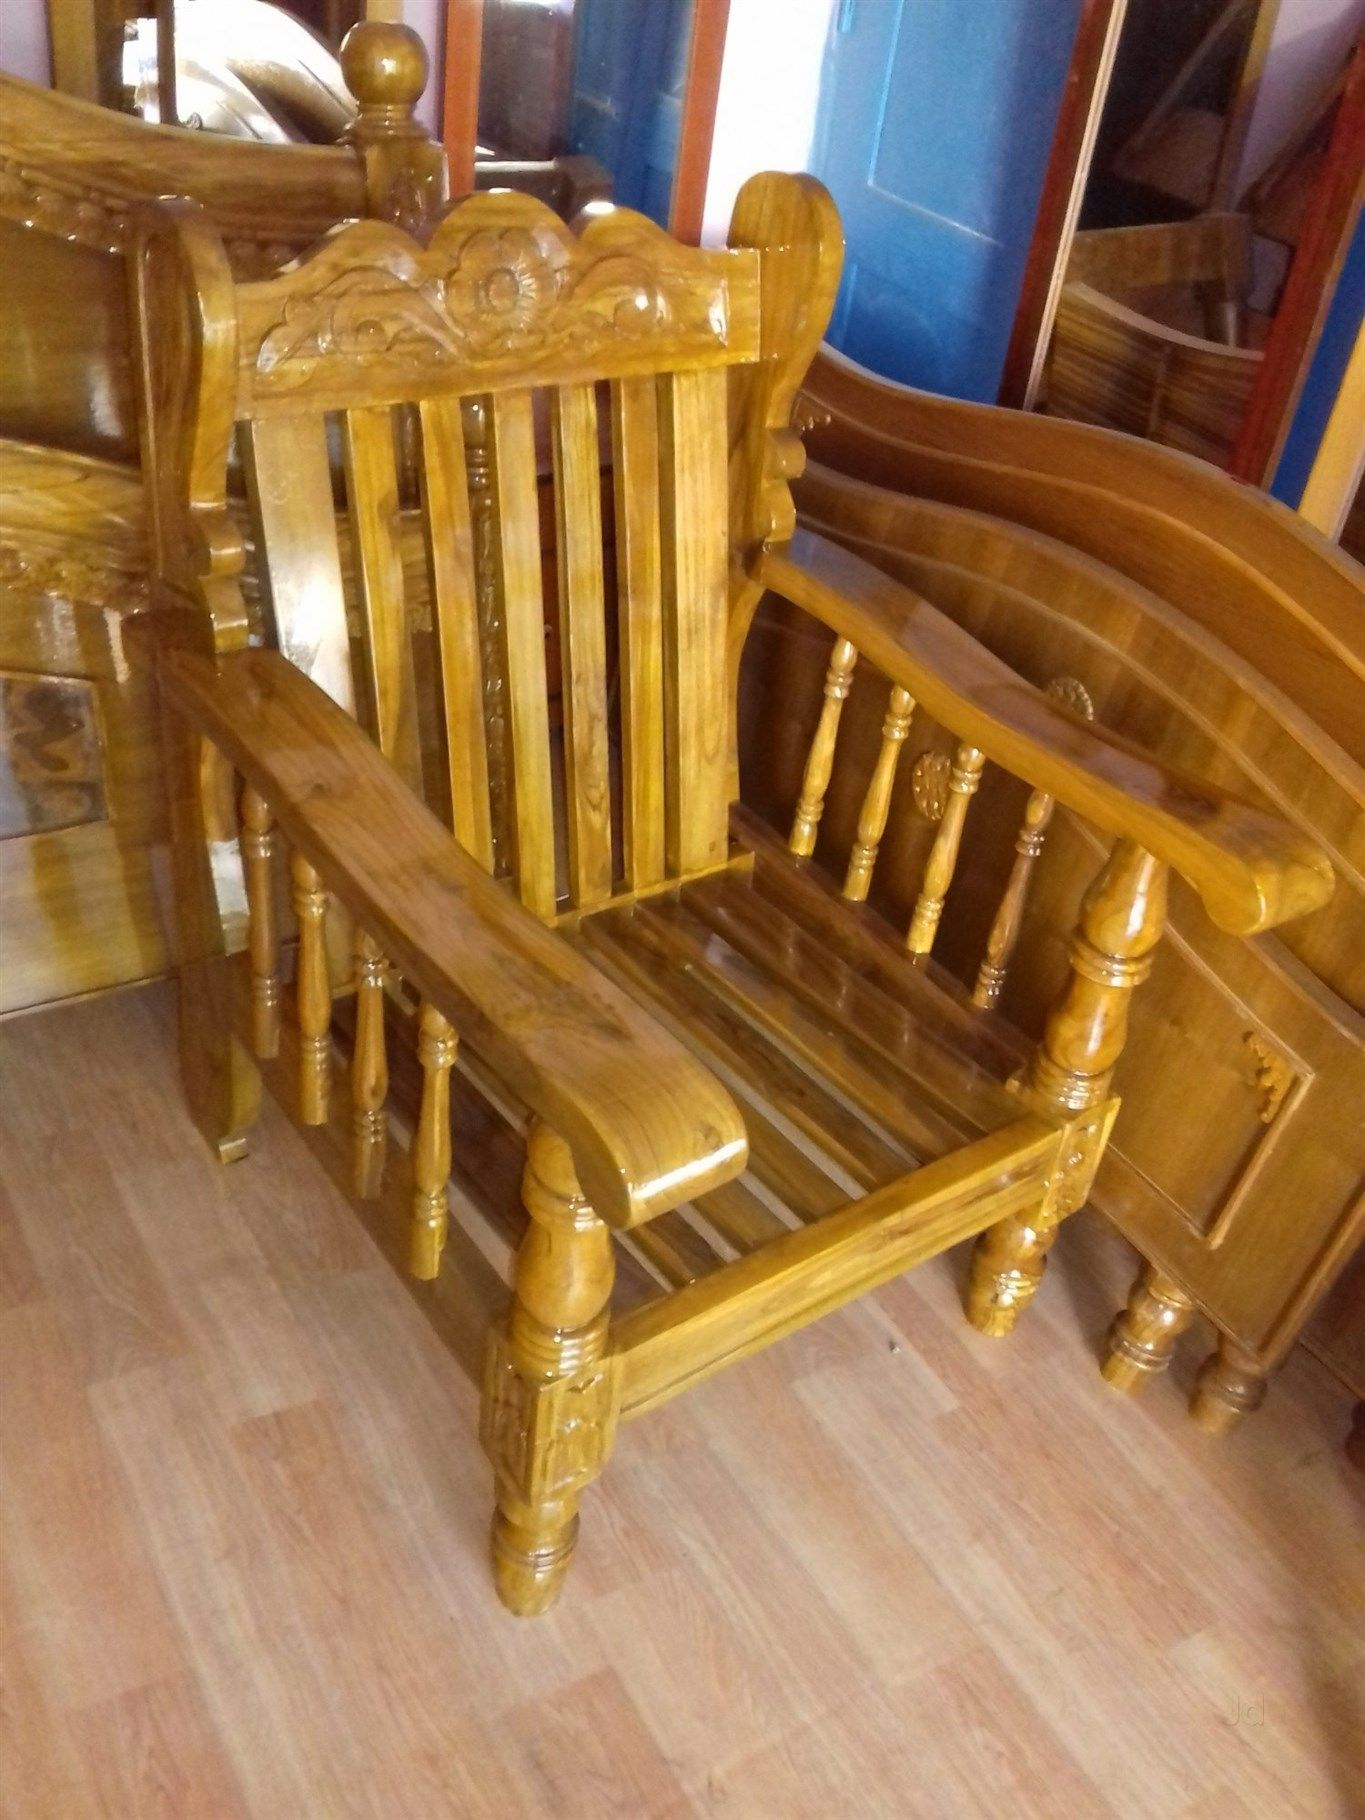 Furniture Ideas29 Magnificent Wooden Furniture Ideas Saleprice 44 Furniture Design Wooden Wooden Sofa Wooden Sofa Set